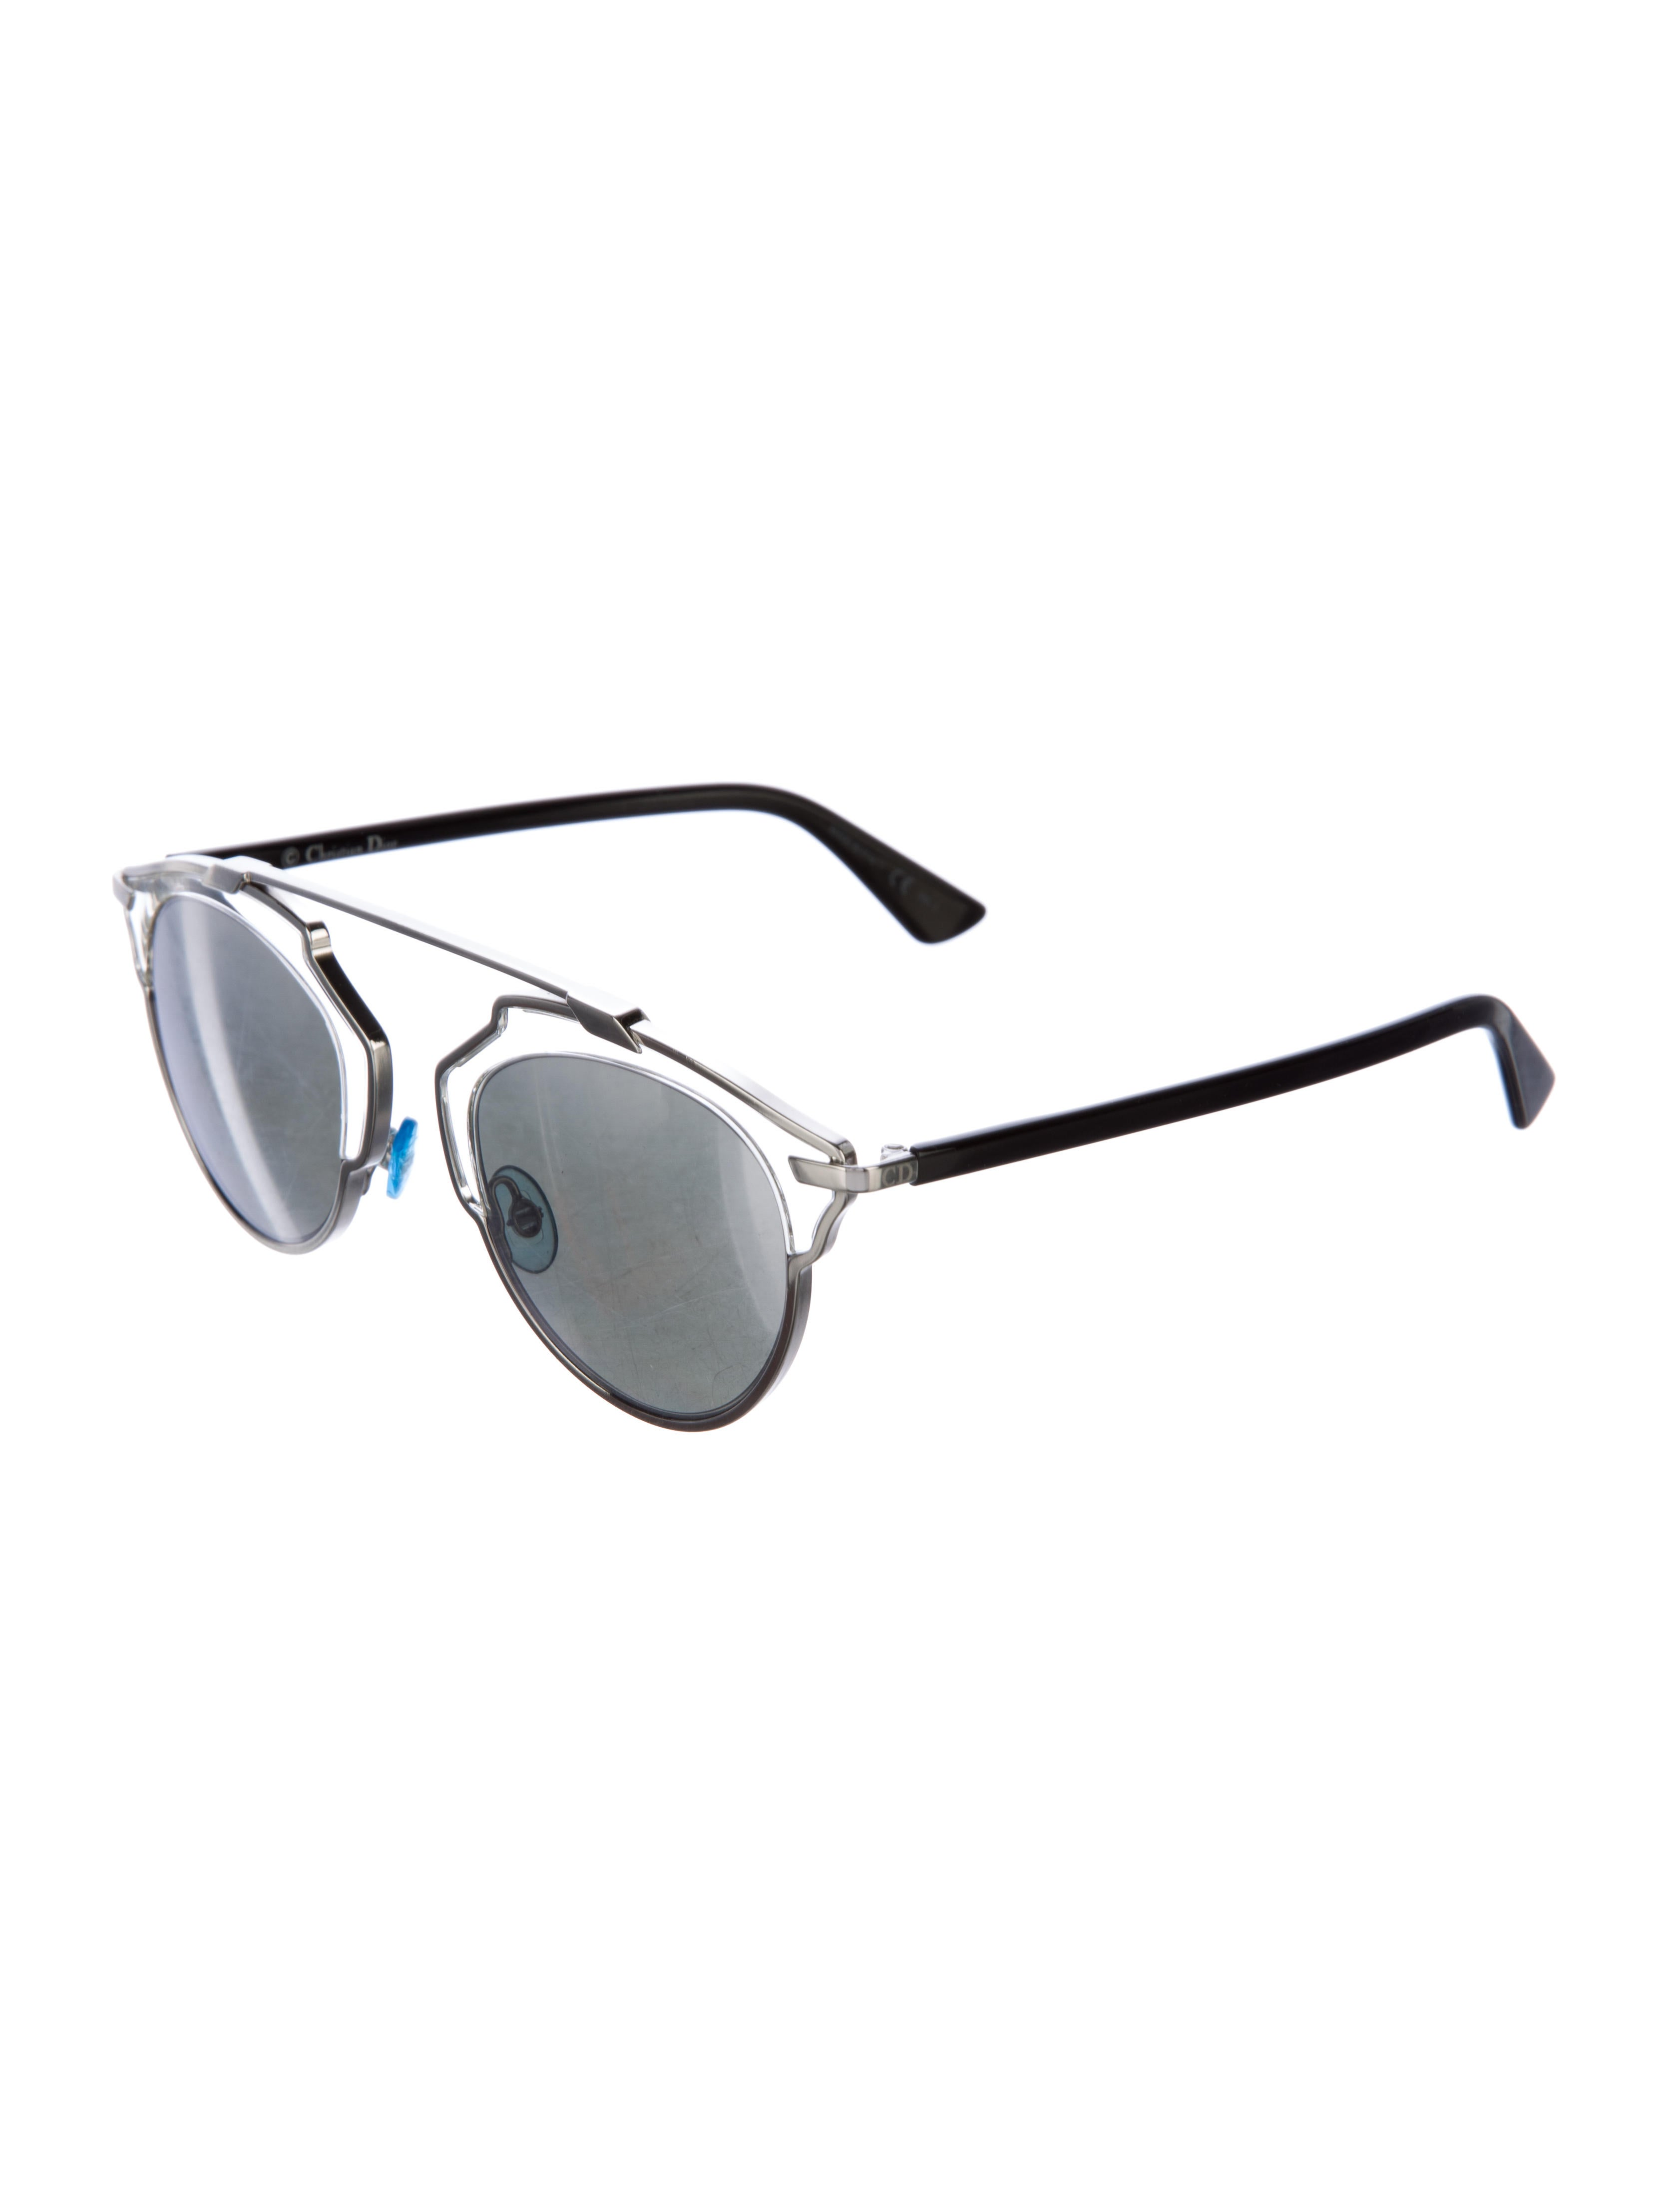 a27276603c30 Christian Dior Dior So Real Mirrored Sunglasses - Accessories - CHR52636